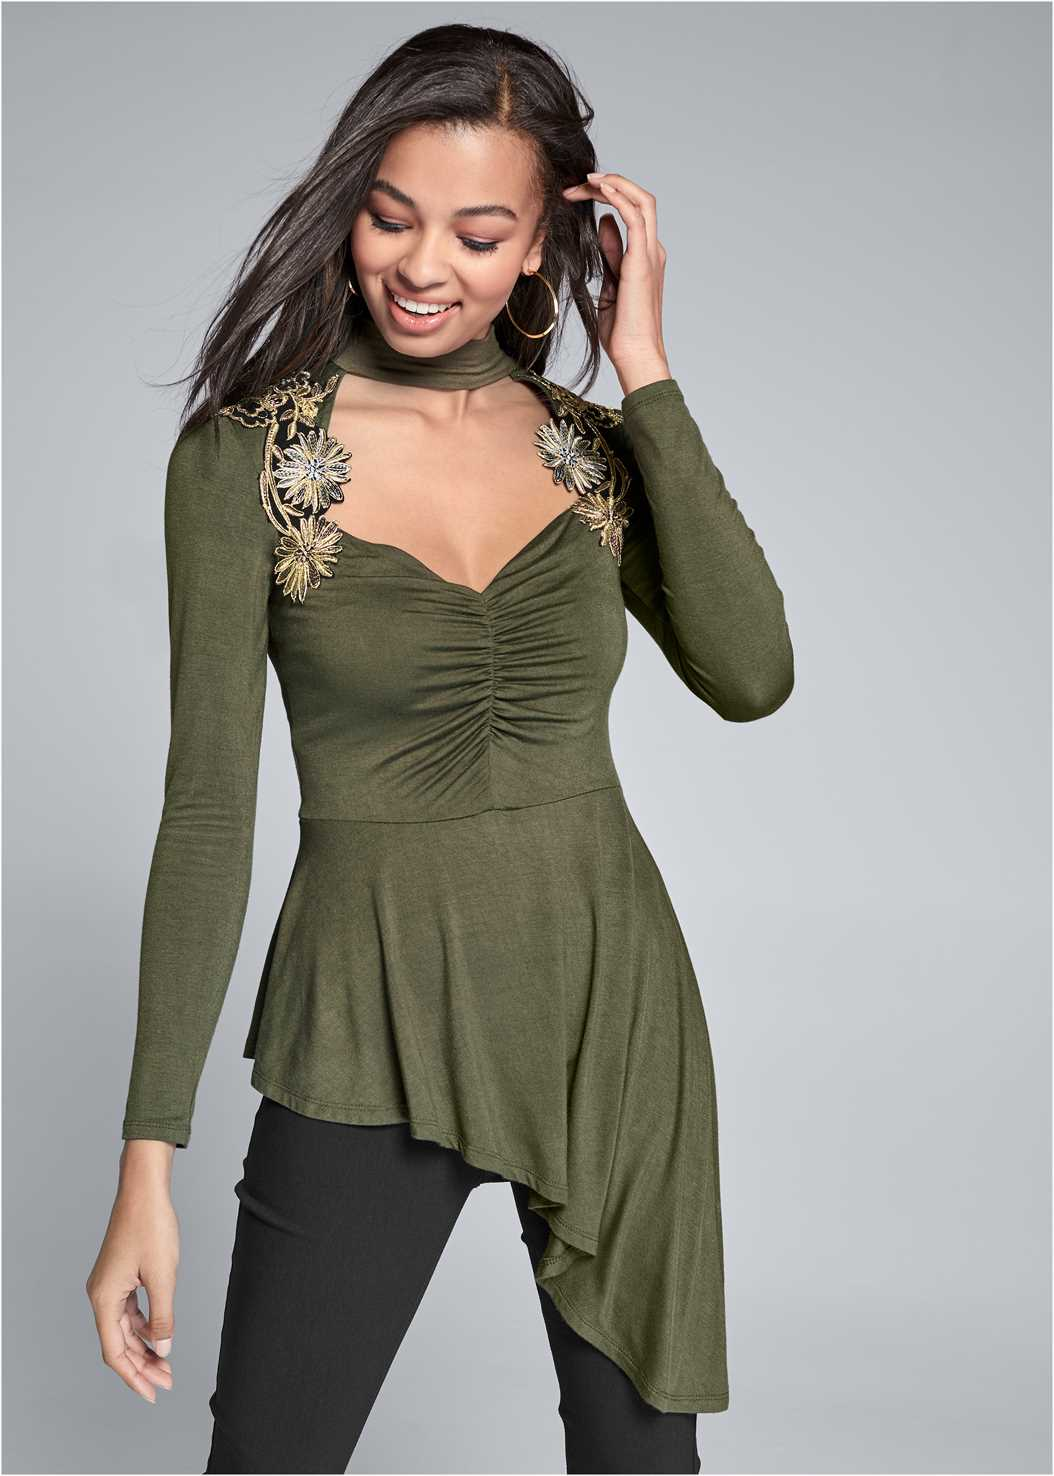 Lace Mock Neck Top,Mid Rise Slimming Stretch Jeggings